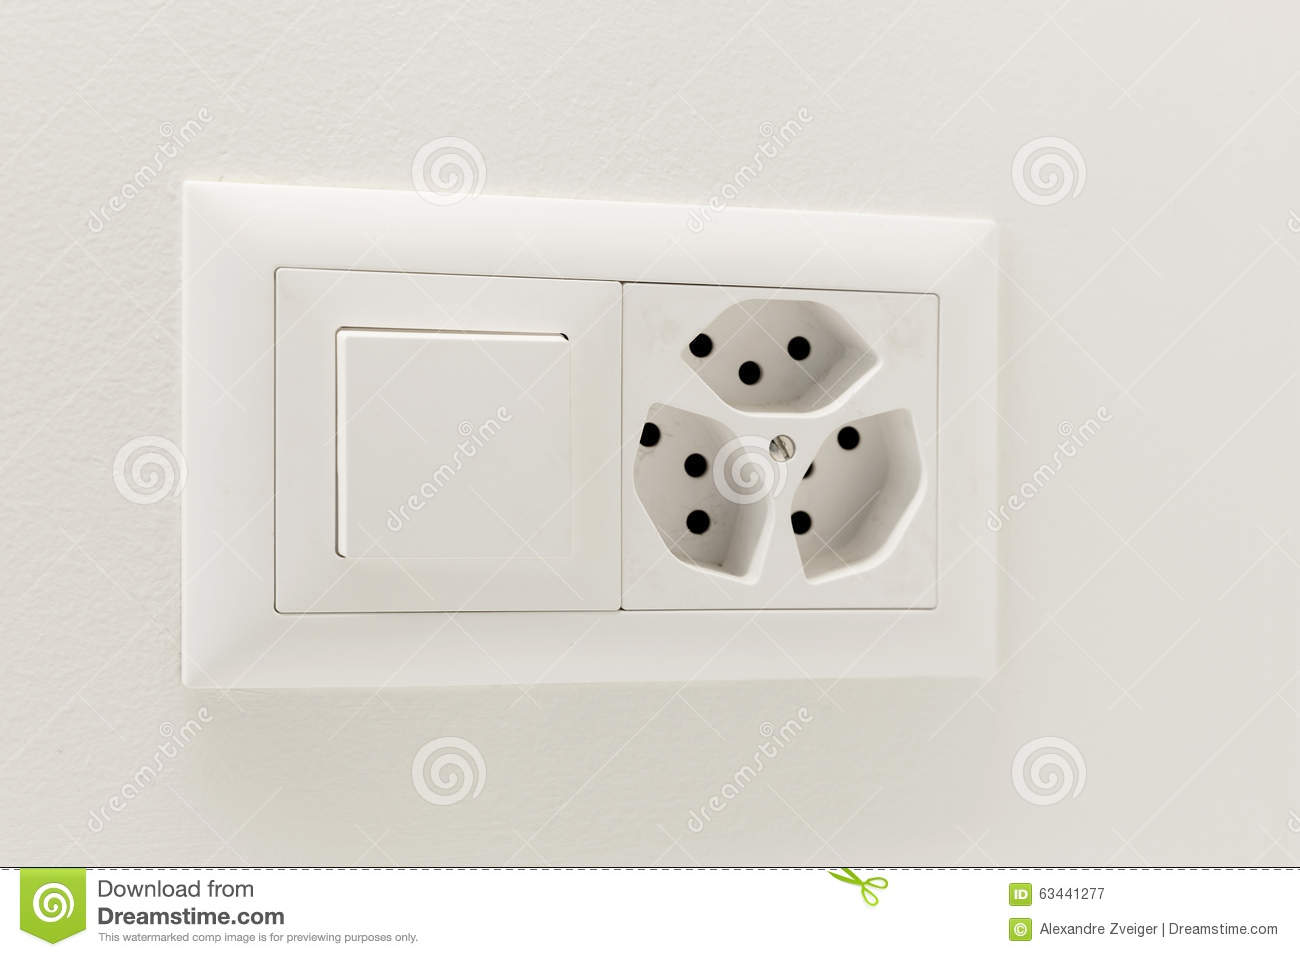 Light Switch And Electrical Outlet Stock Photo Image 63441277